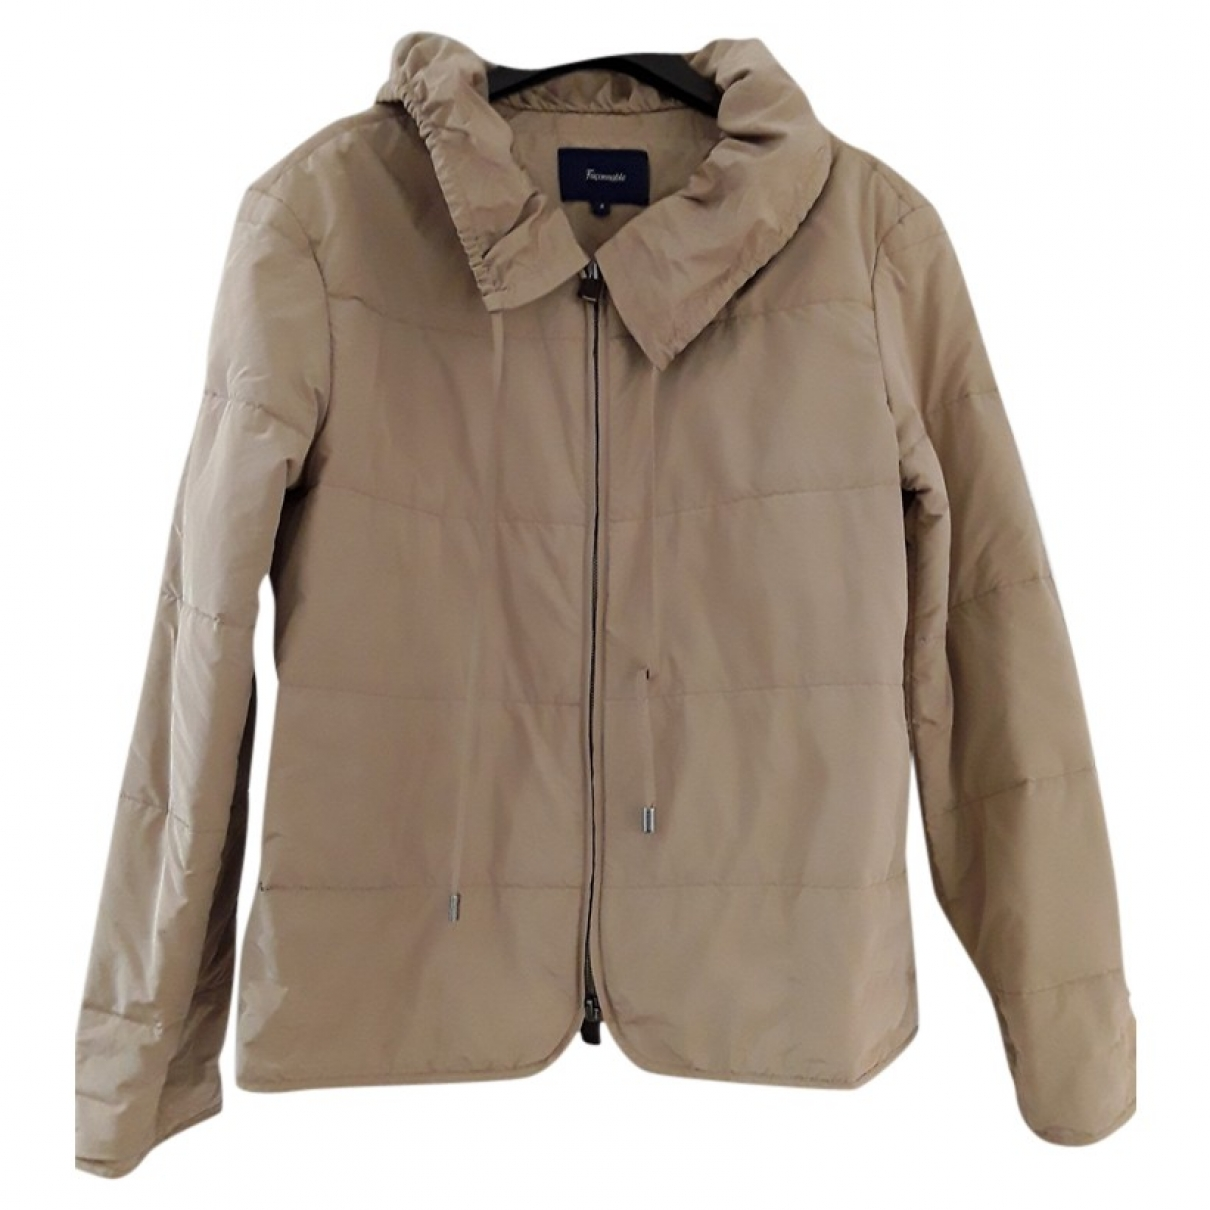 Faconnable \N Jacke in  Beige Polyester